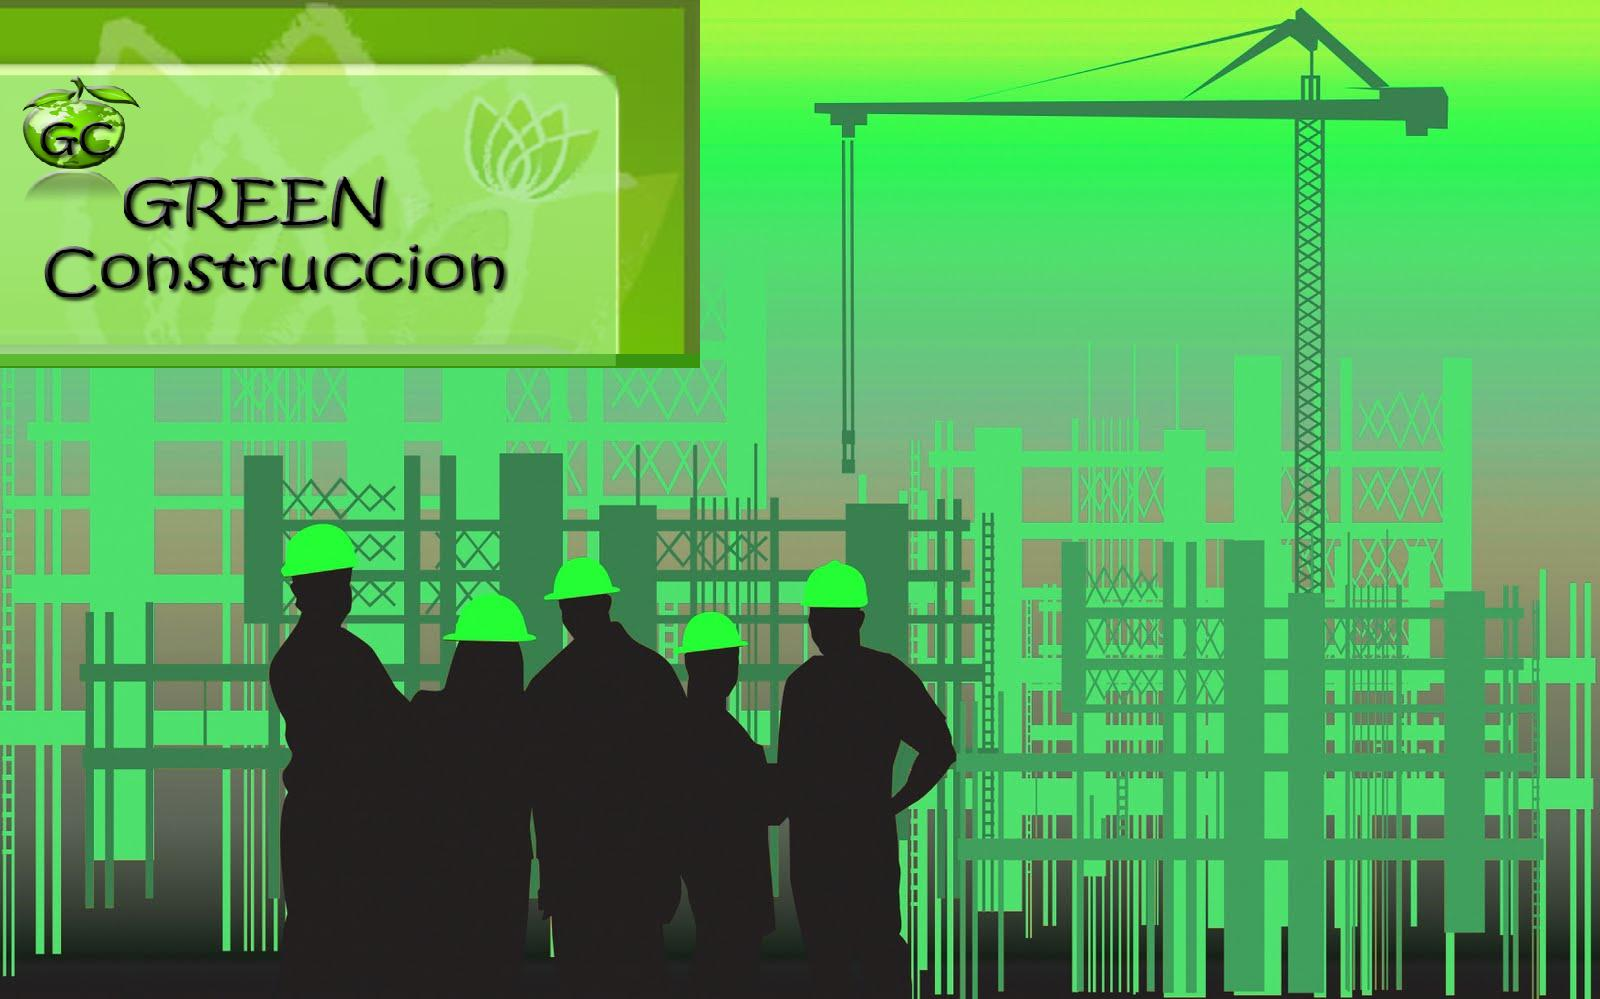 Green Construccion